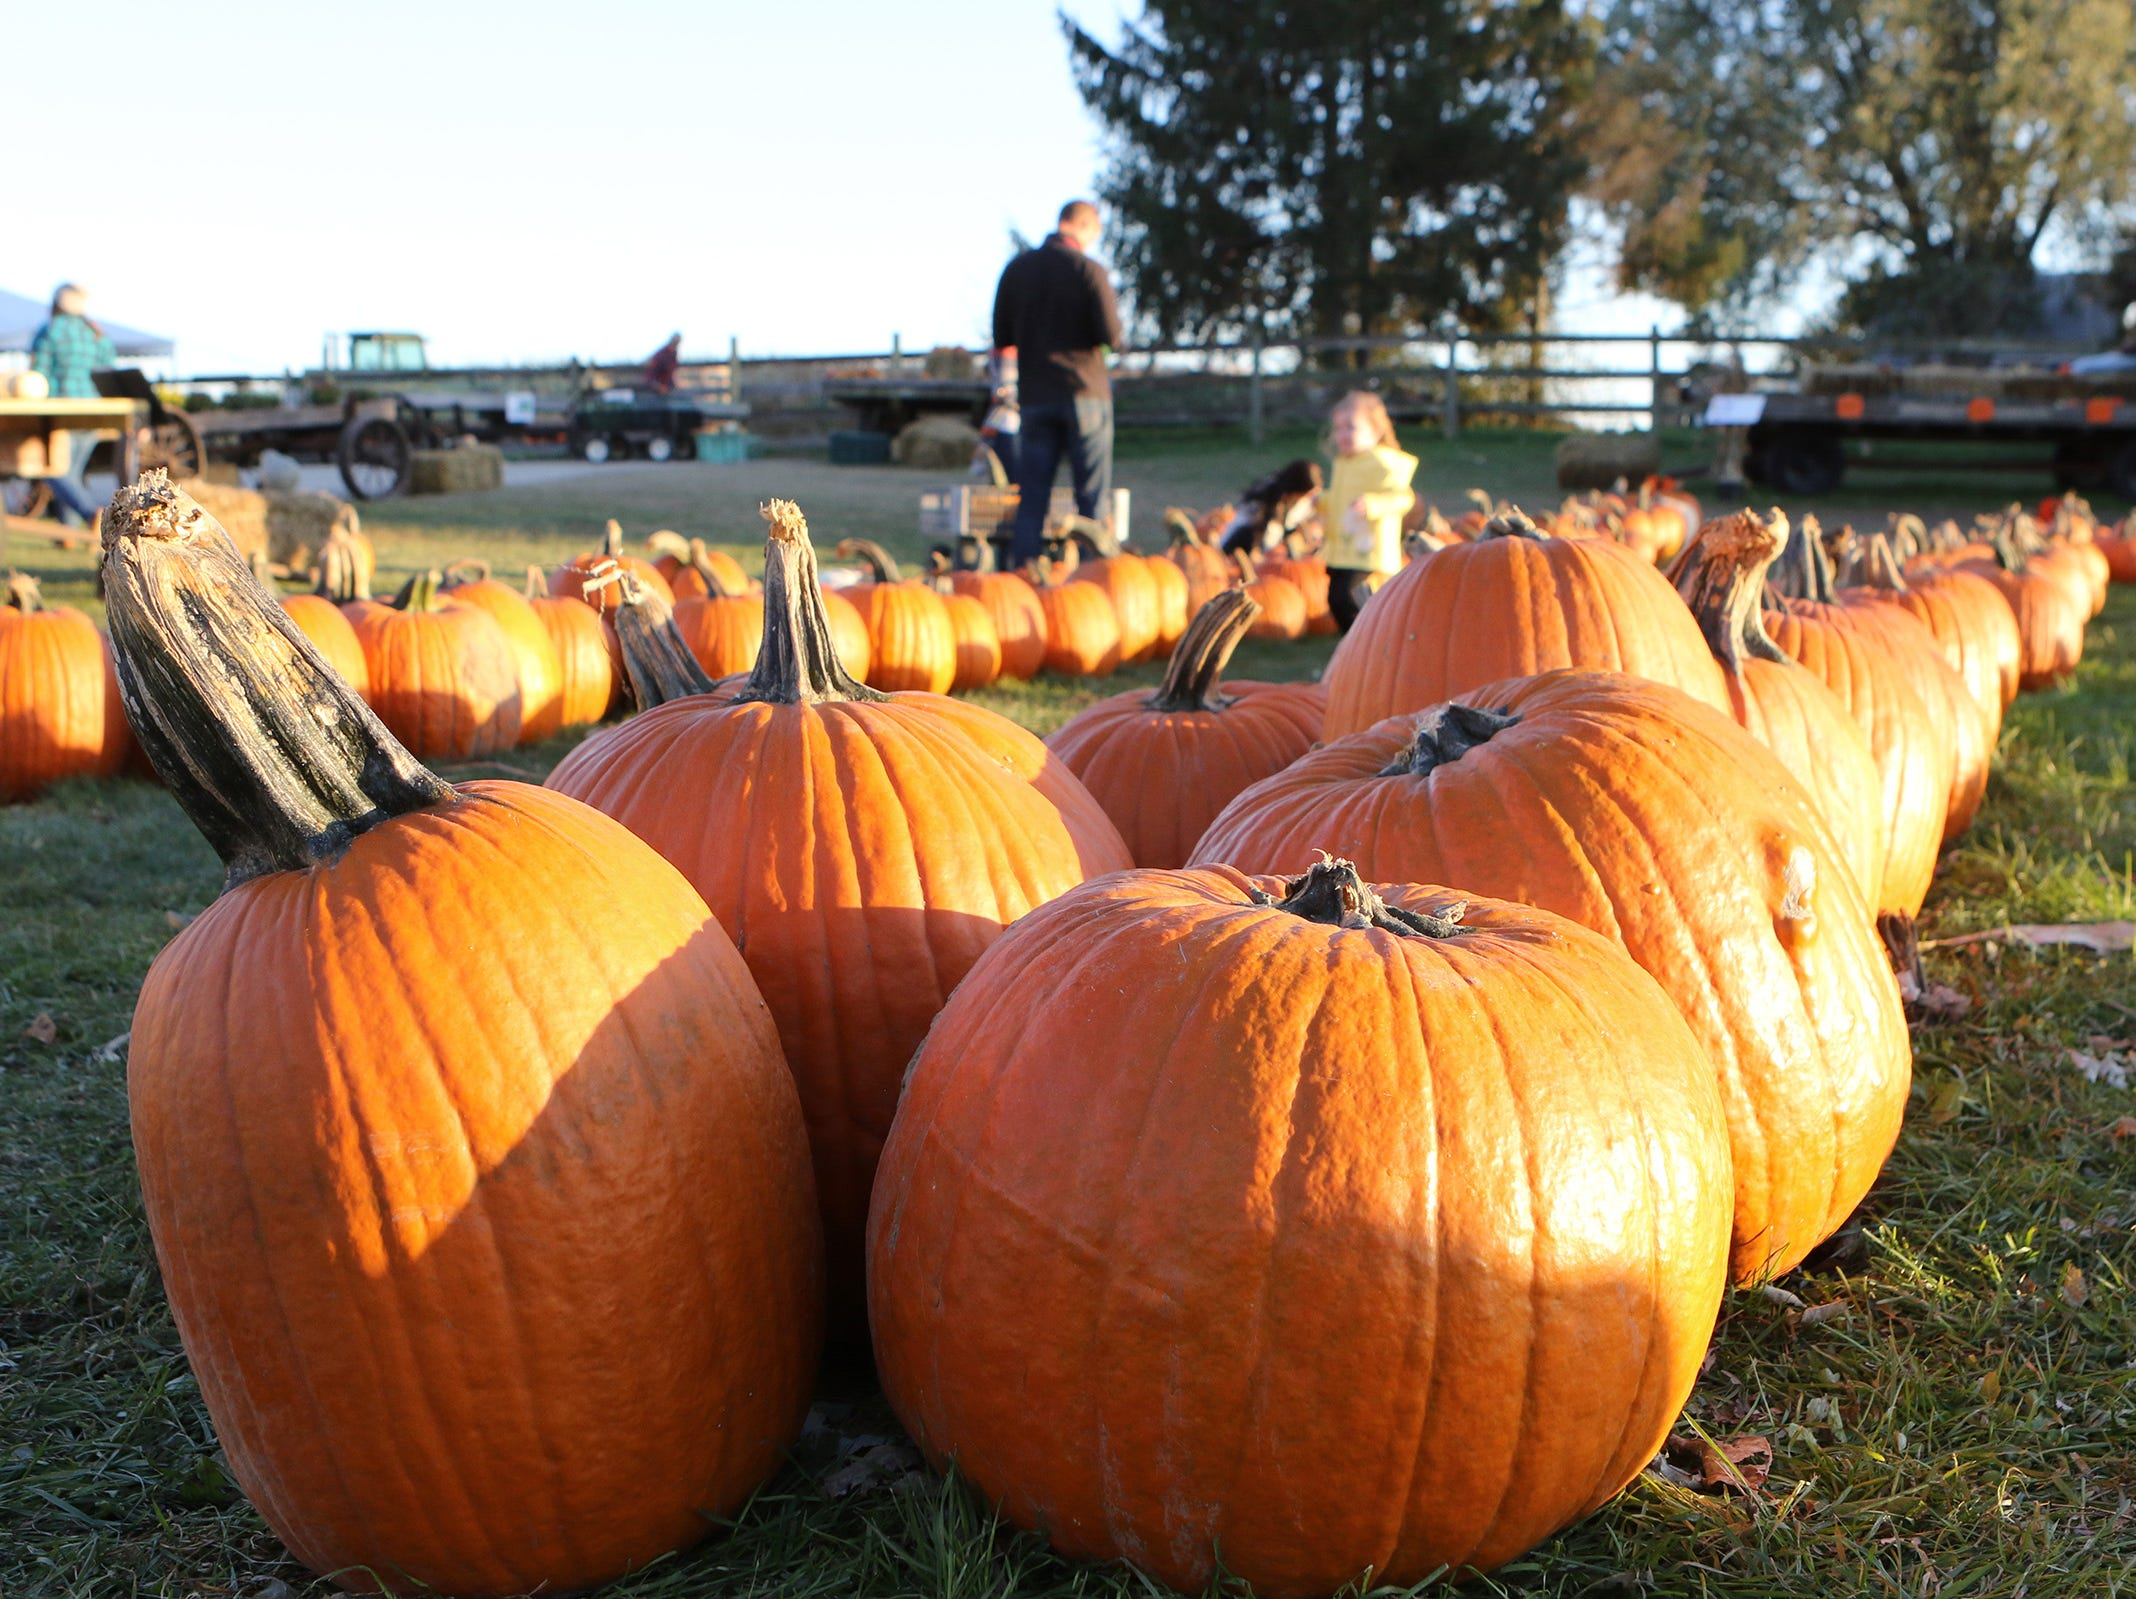 A spell of dry weather brought customers to Schuett Farms in Mukwonago on Oct. 22.